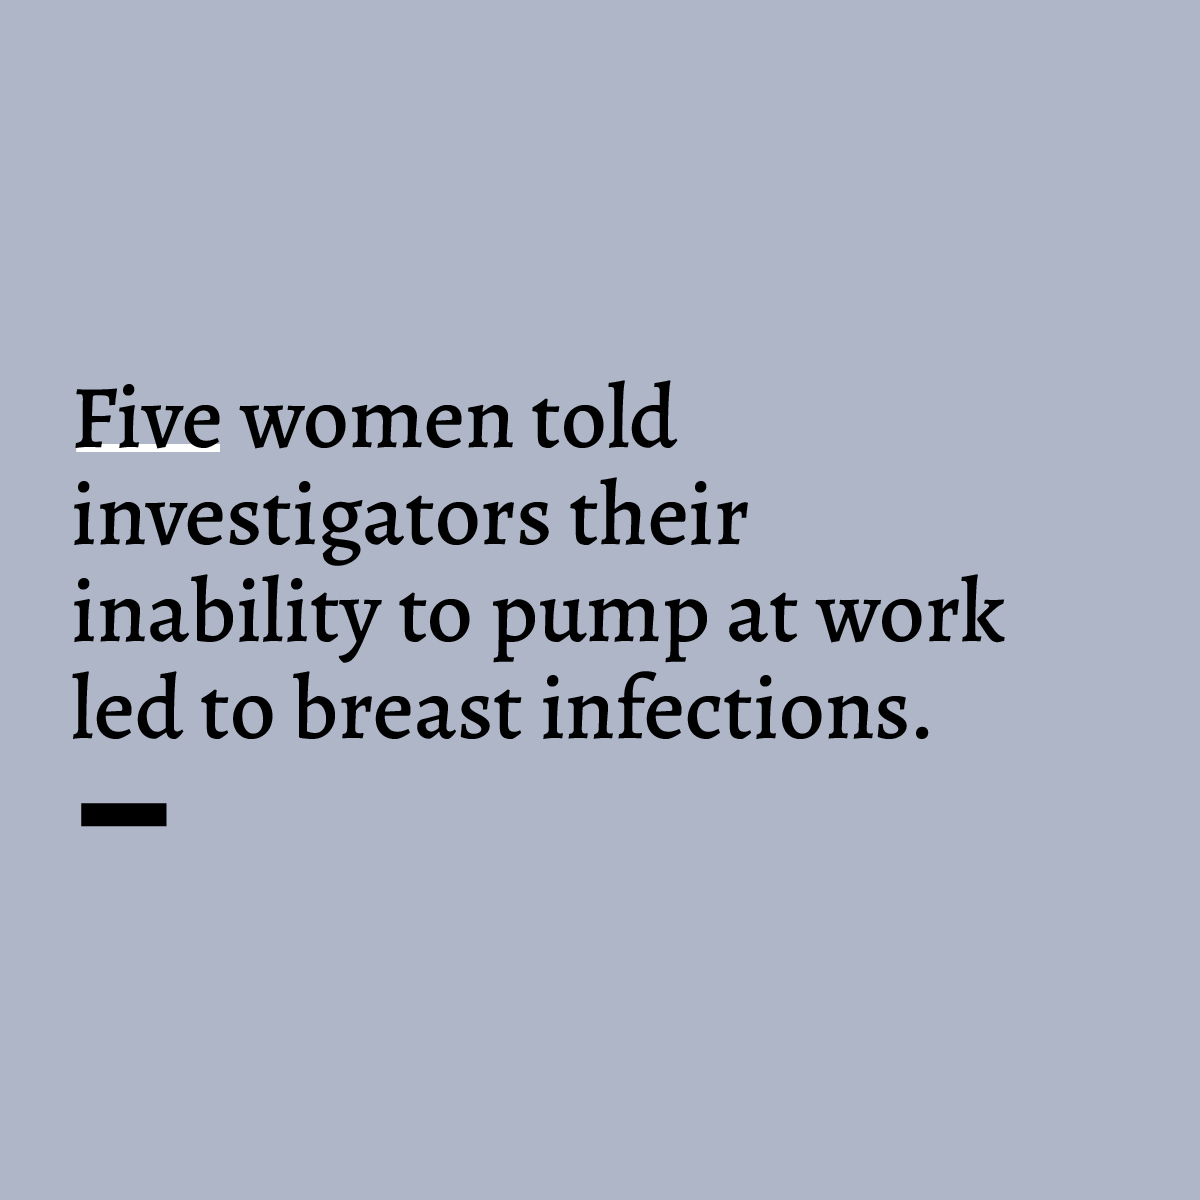 Westlake Legal Group 5d82639ee4b070d468c5c4f0 How Employers Make It Impossible For Working Women To Breastfeed